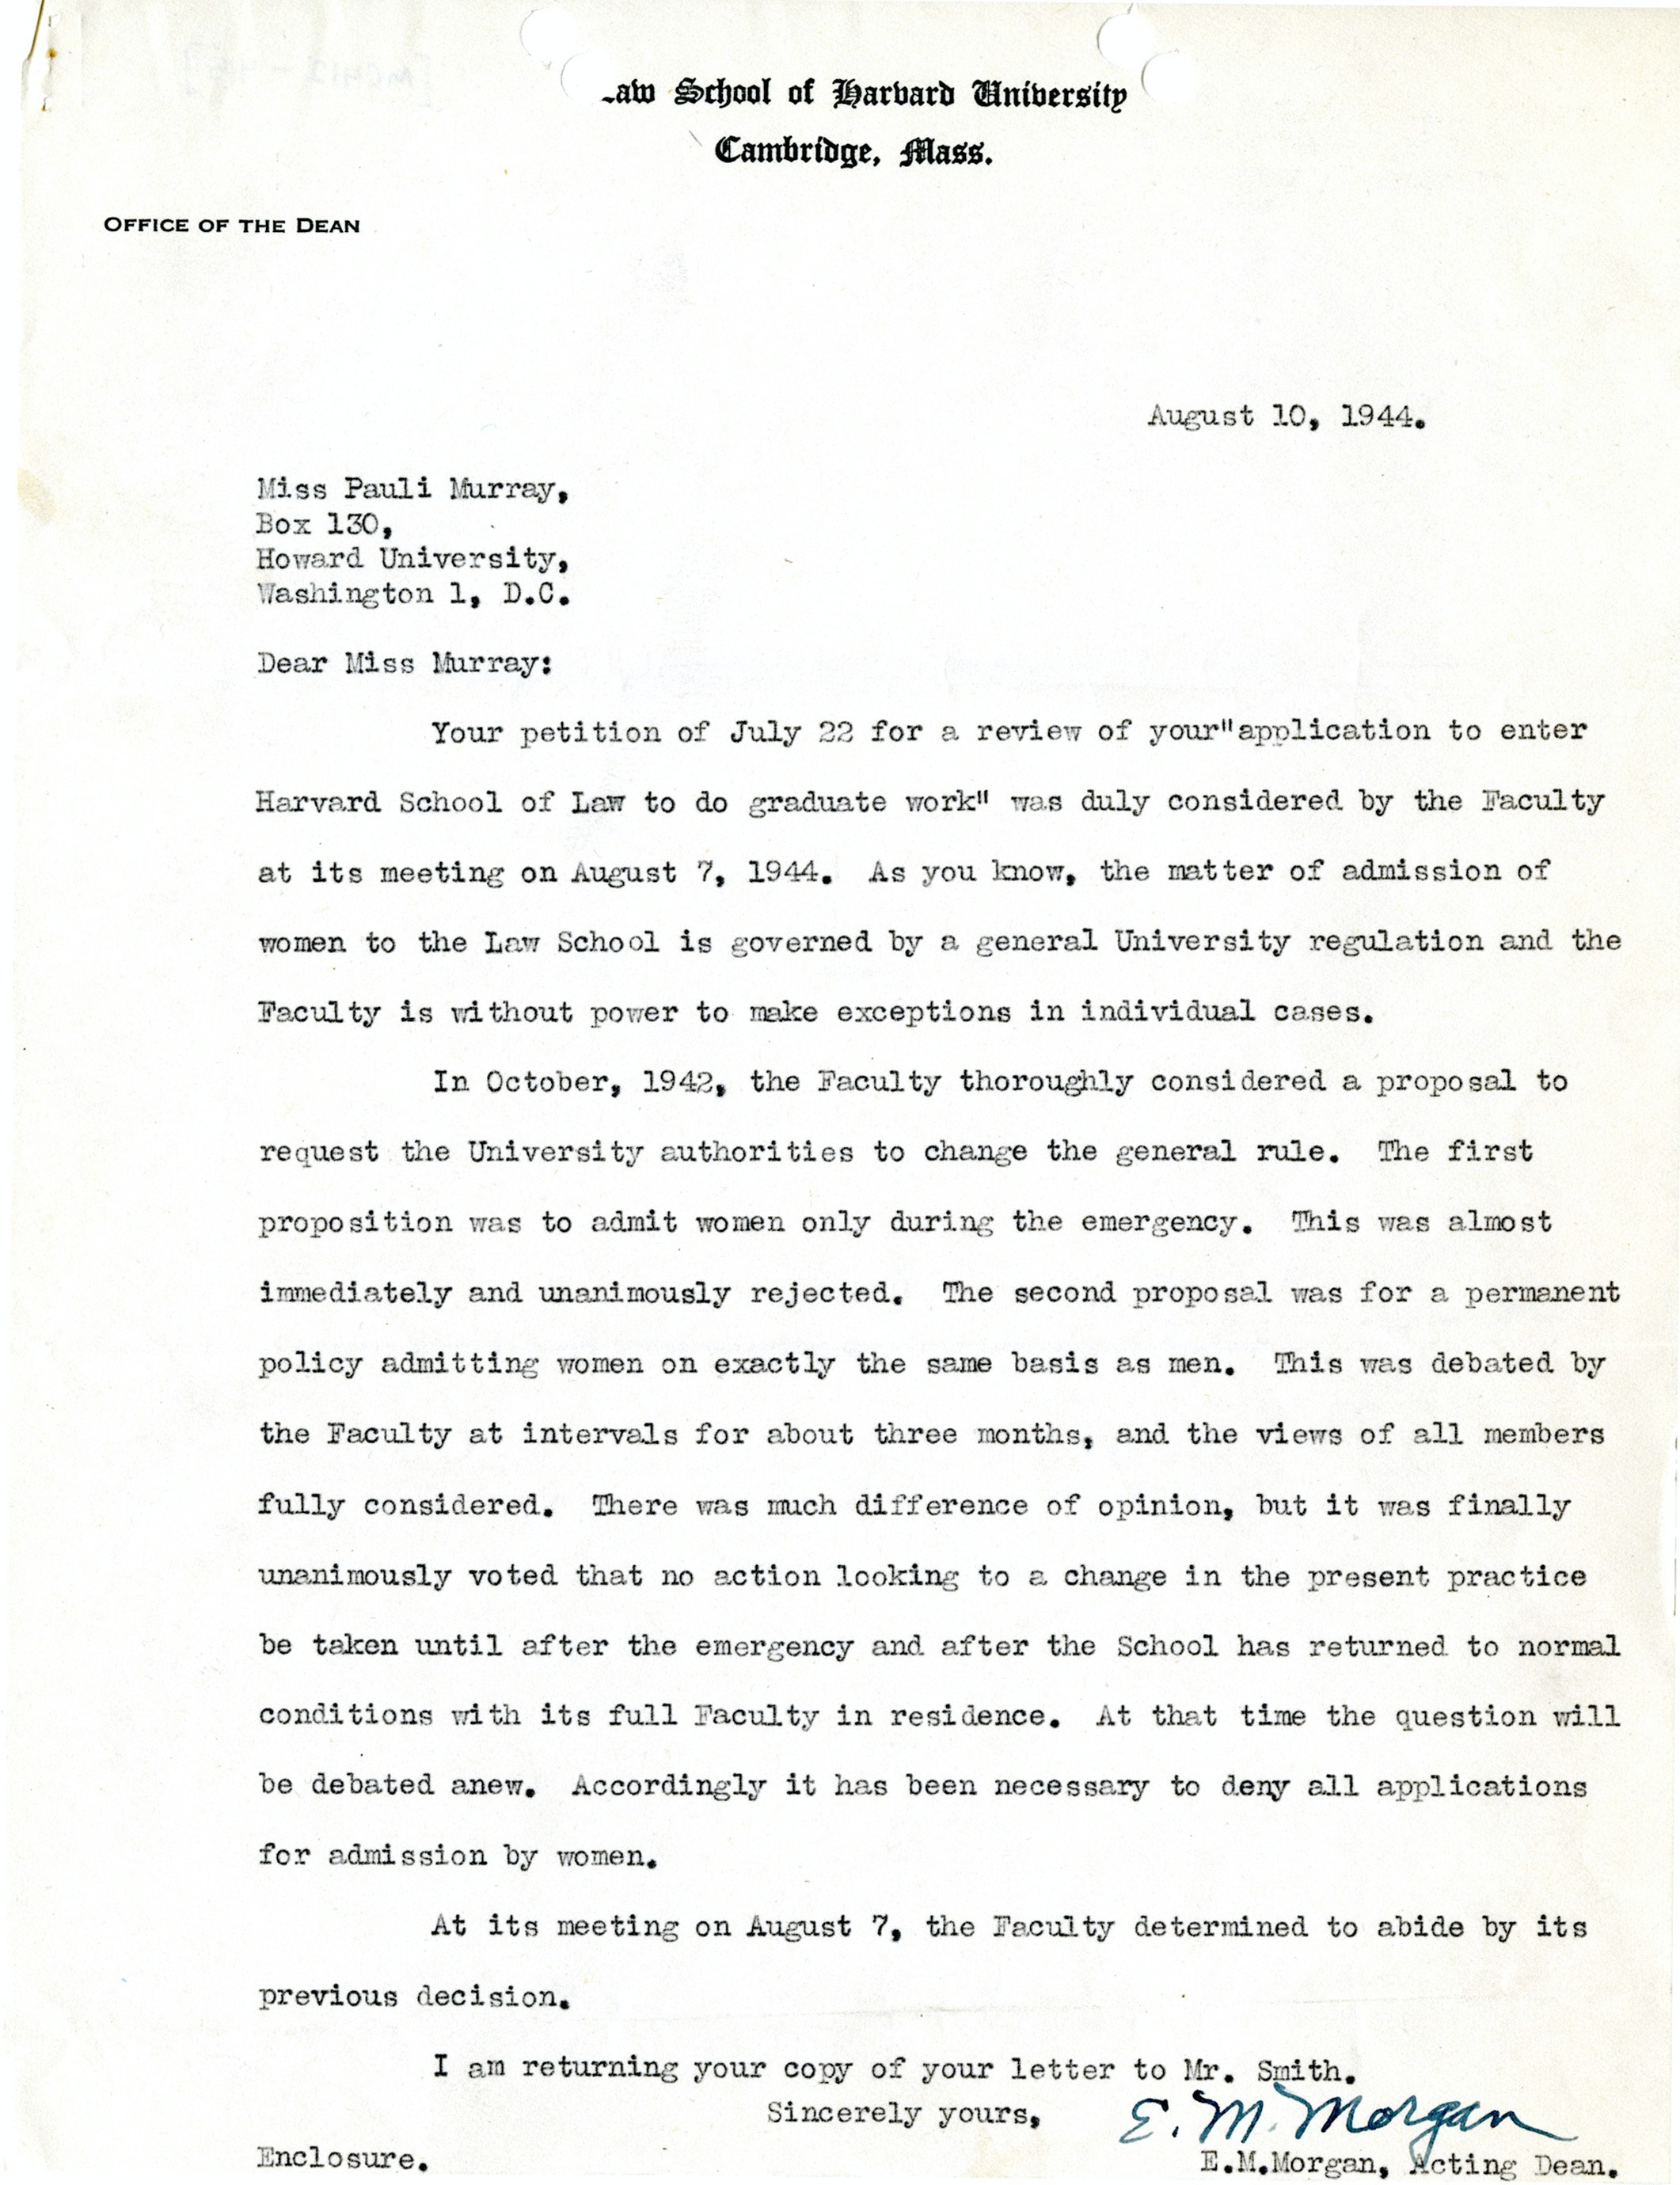 Letter to Pauli Murray